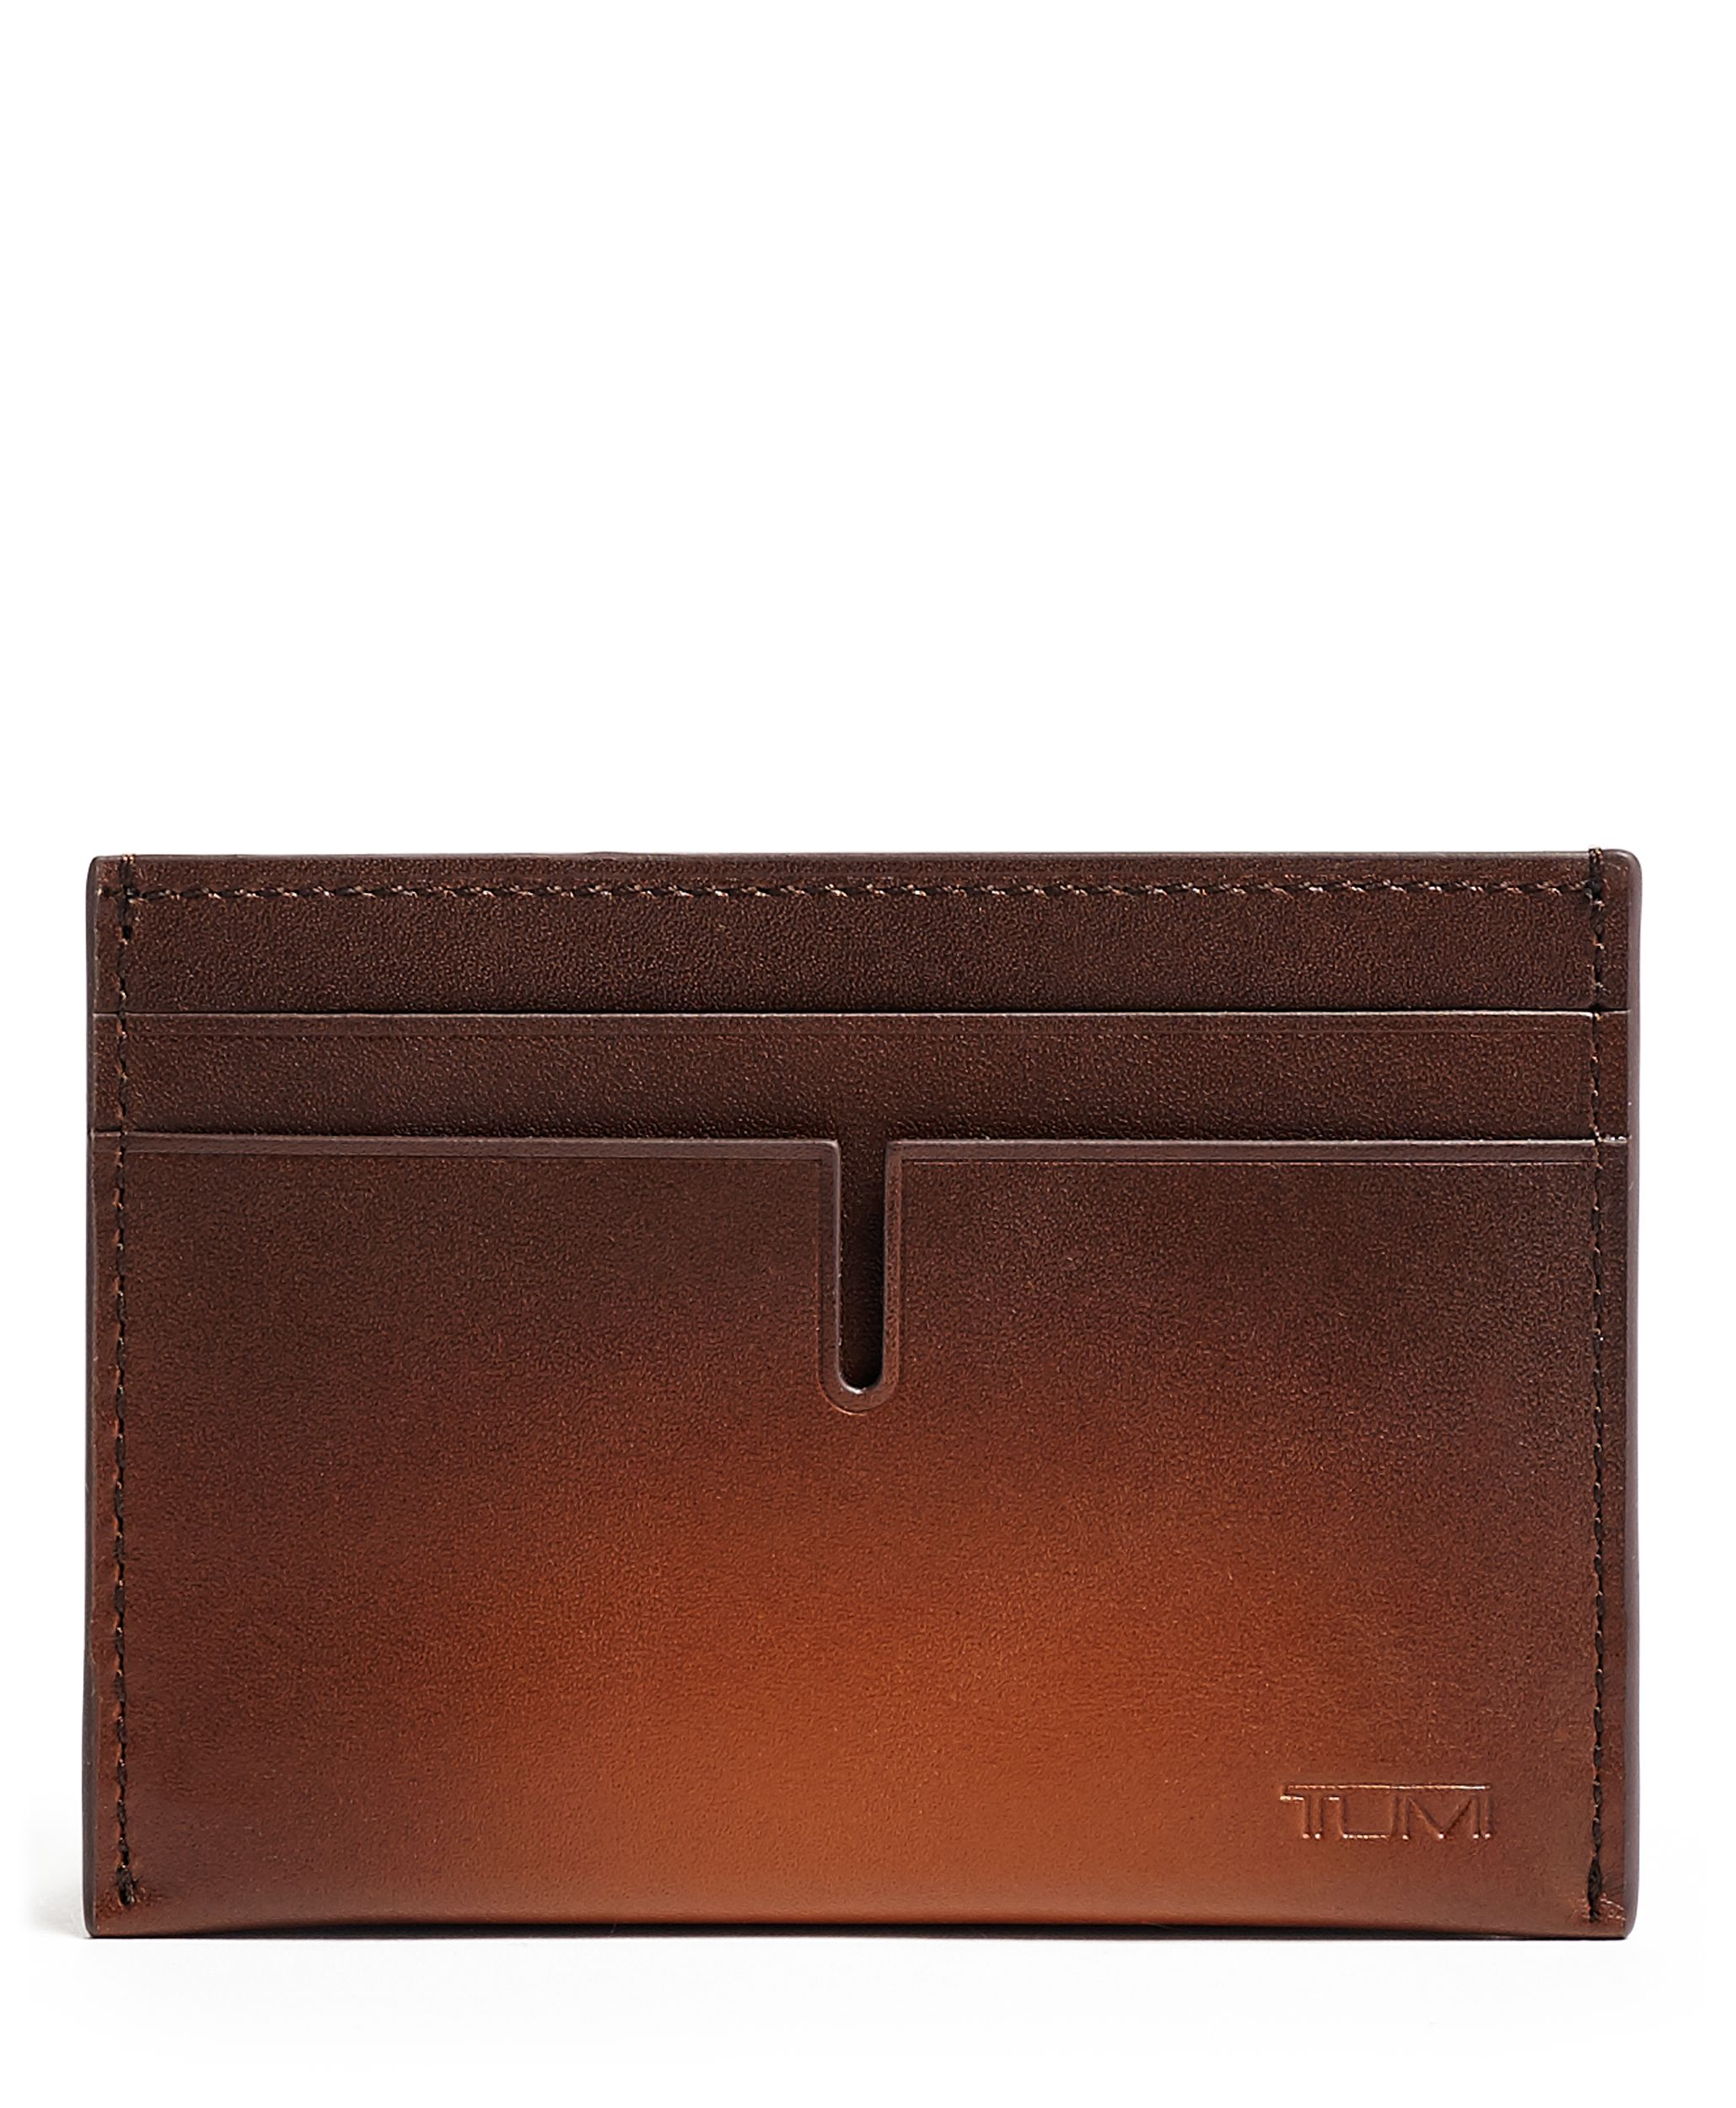 c3fc8aa731f Wallets & Card Cases, Slim Card Case